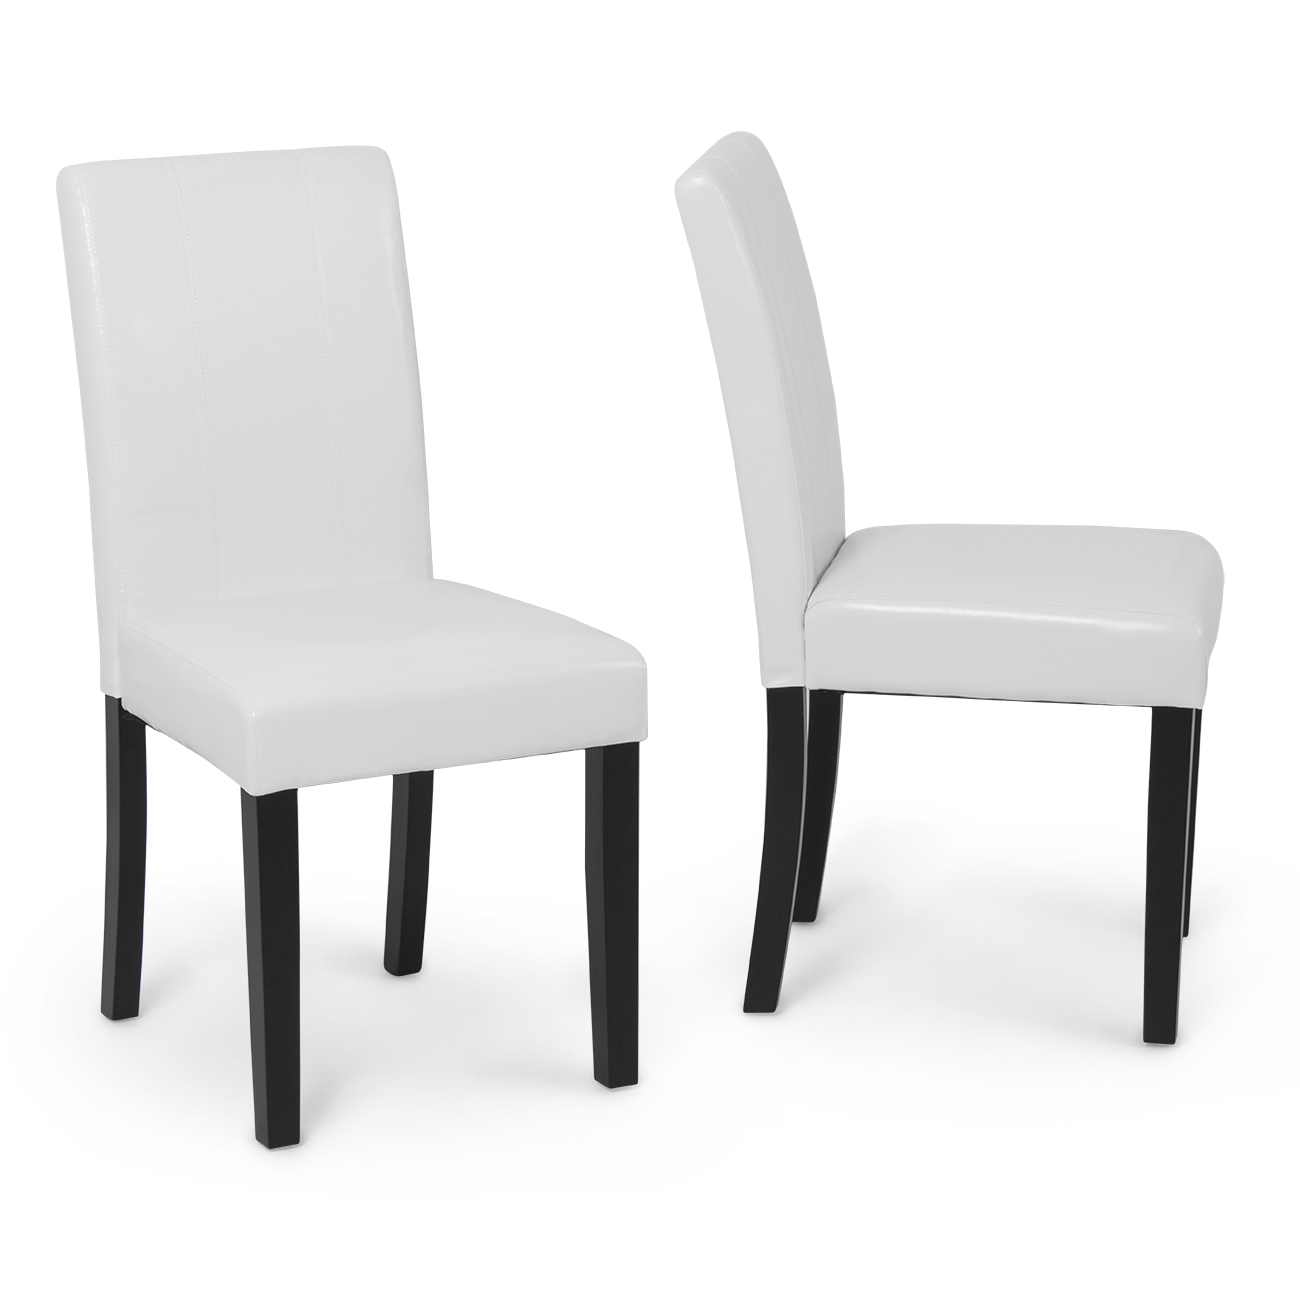 White Modern Dining Chairs Set Of 2 Elegant Design Modern White Leather Parson Dining